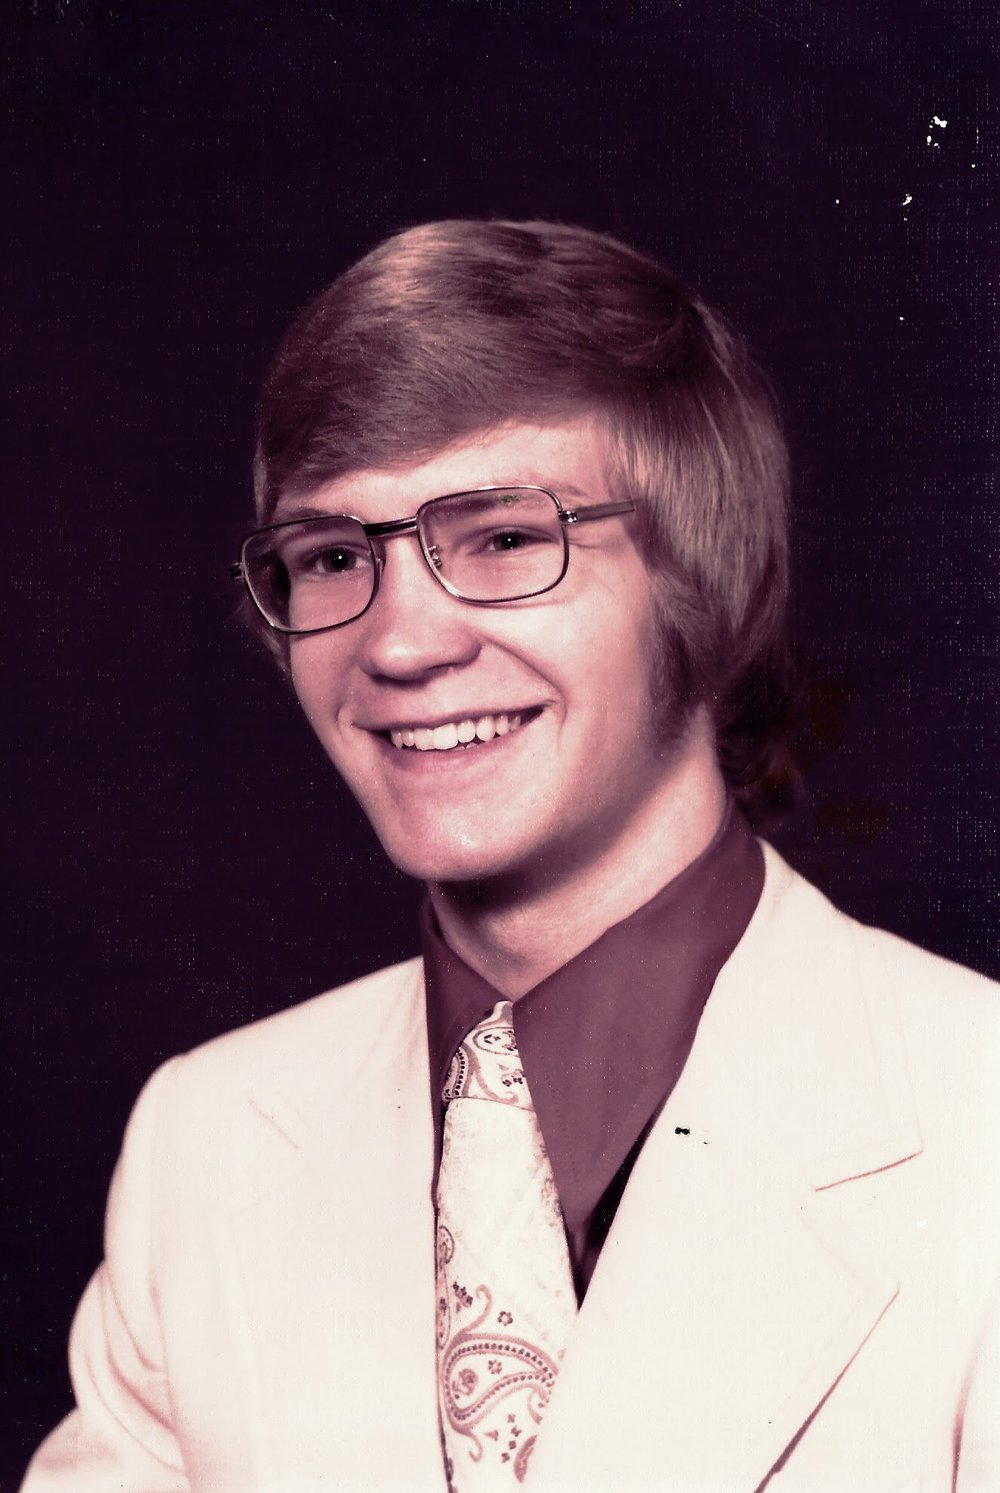 Senior in high school. Glasses were more acceptable in the wire-rimmed version.